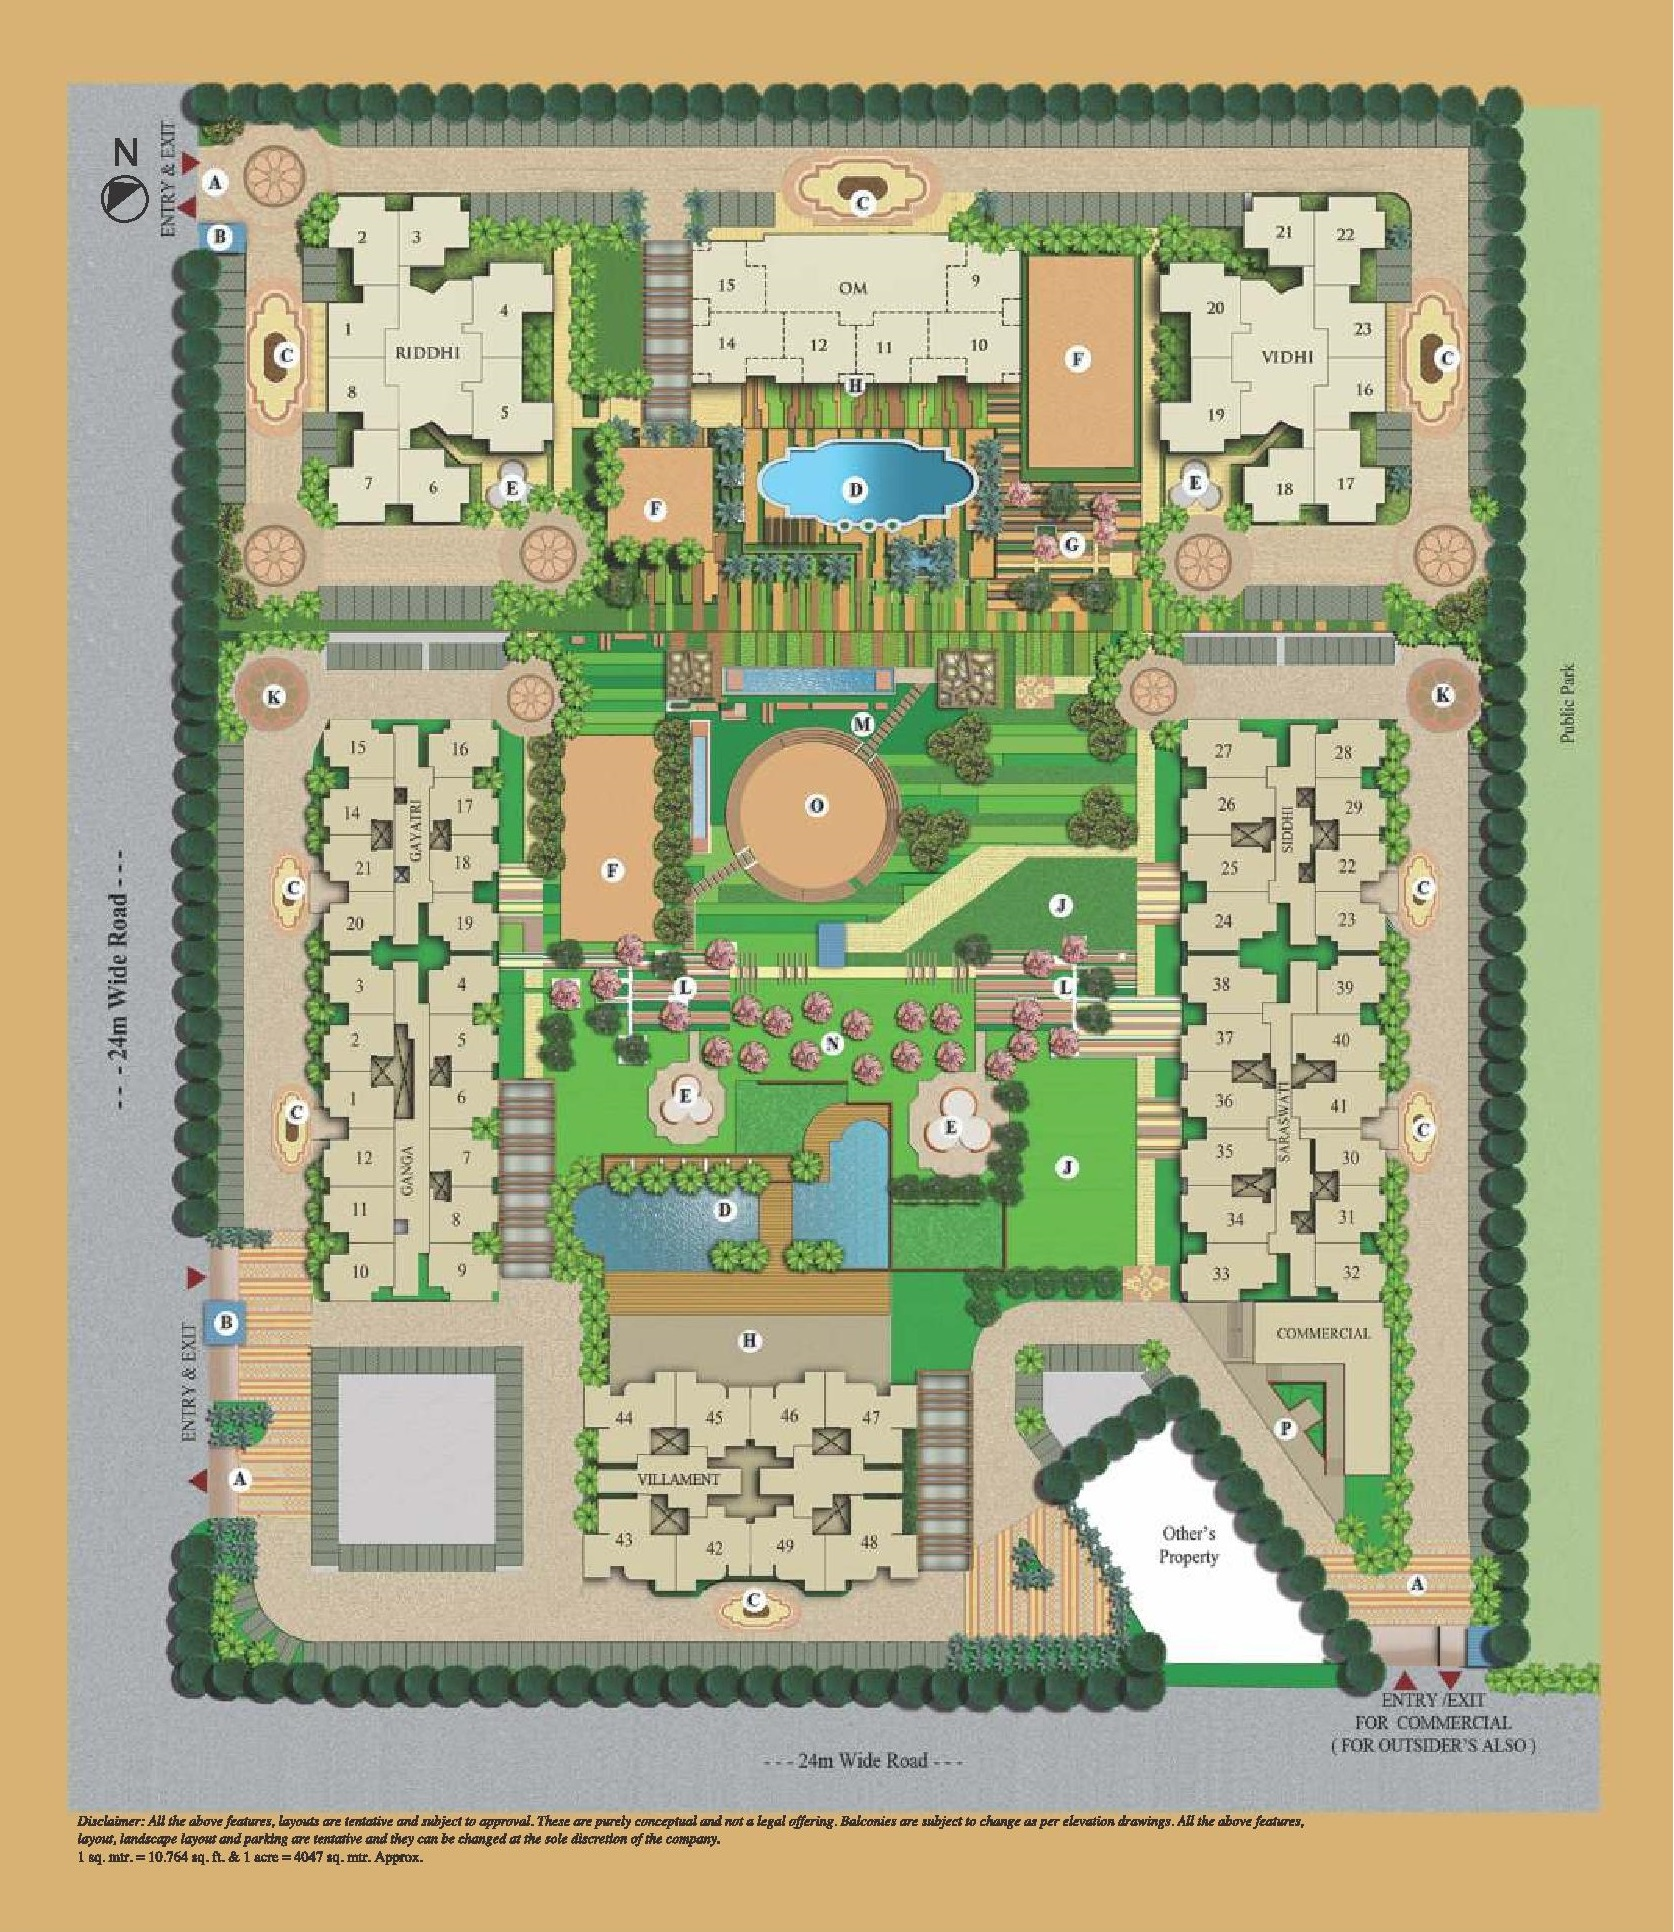 mahagun villaments site plan